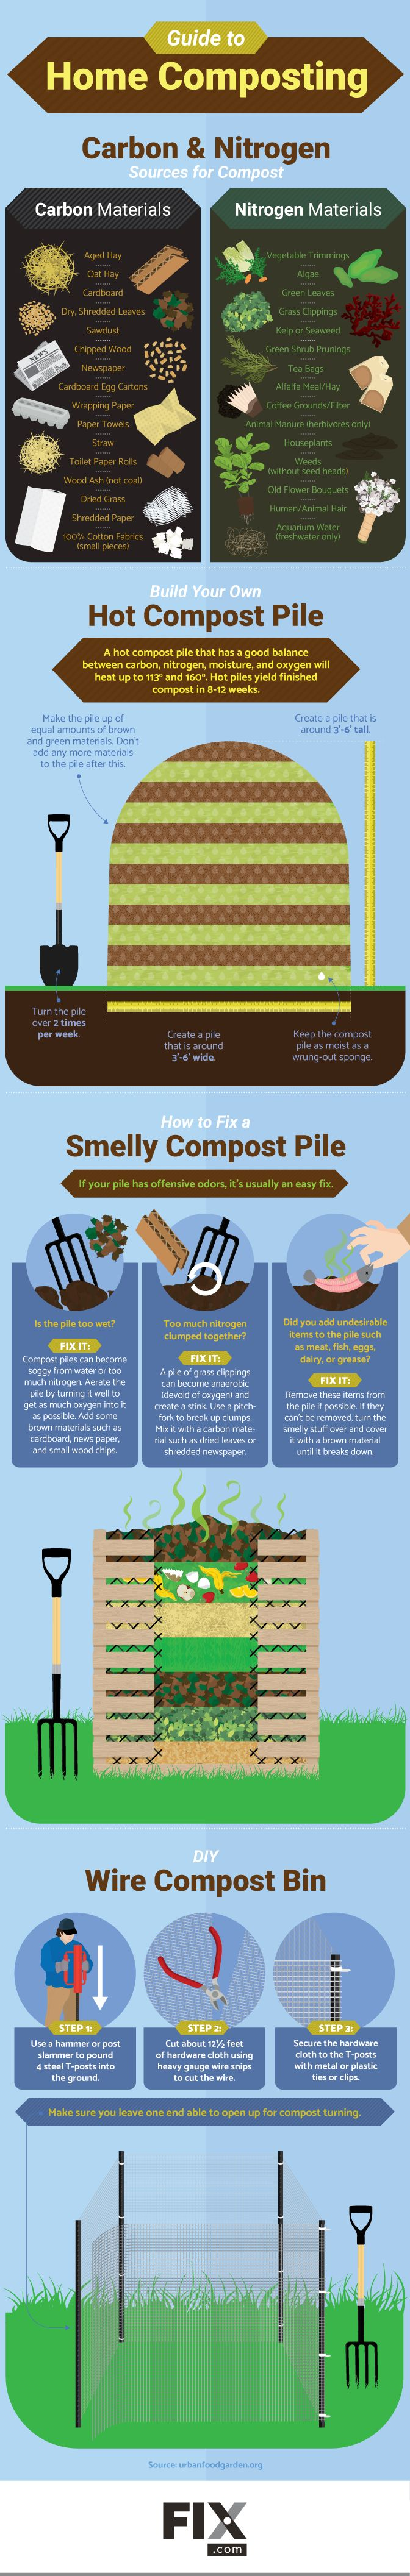 guide to home composting build your own compost pile or bin